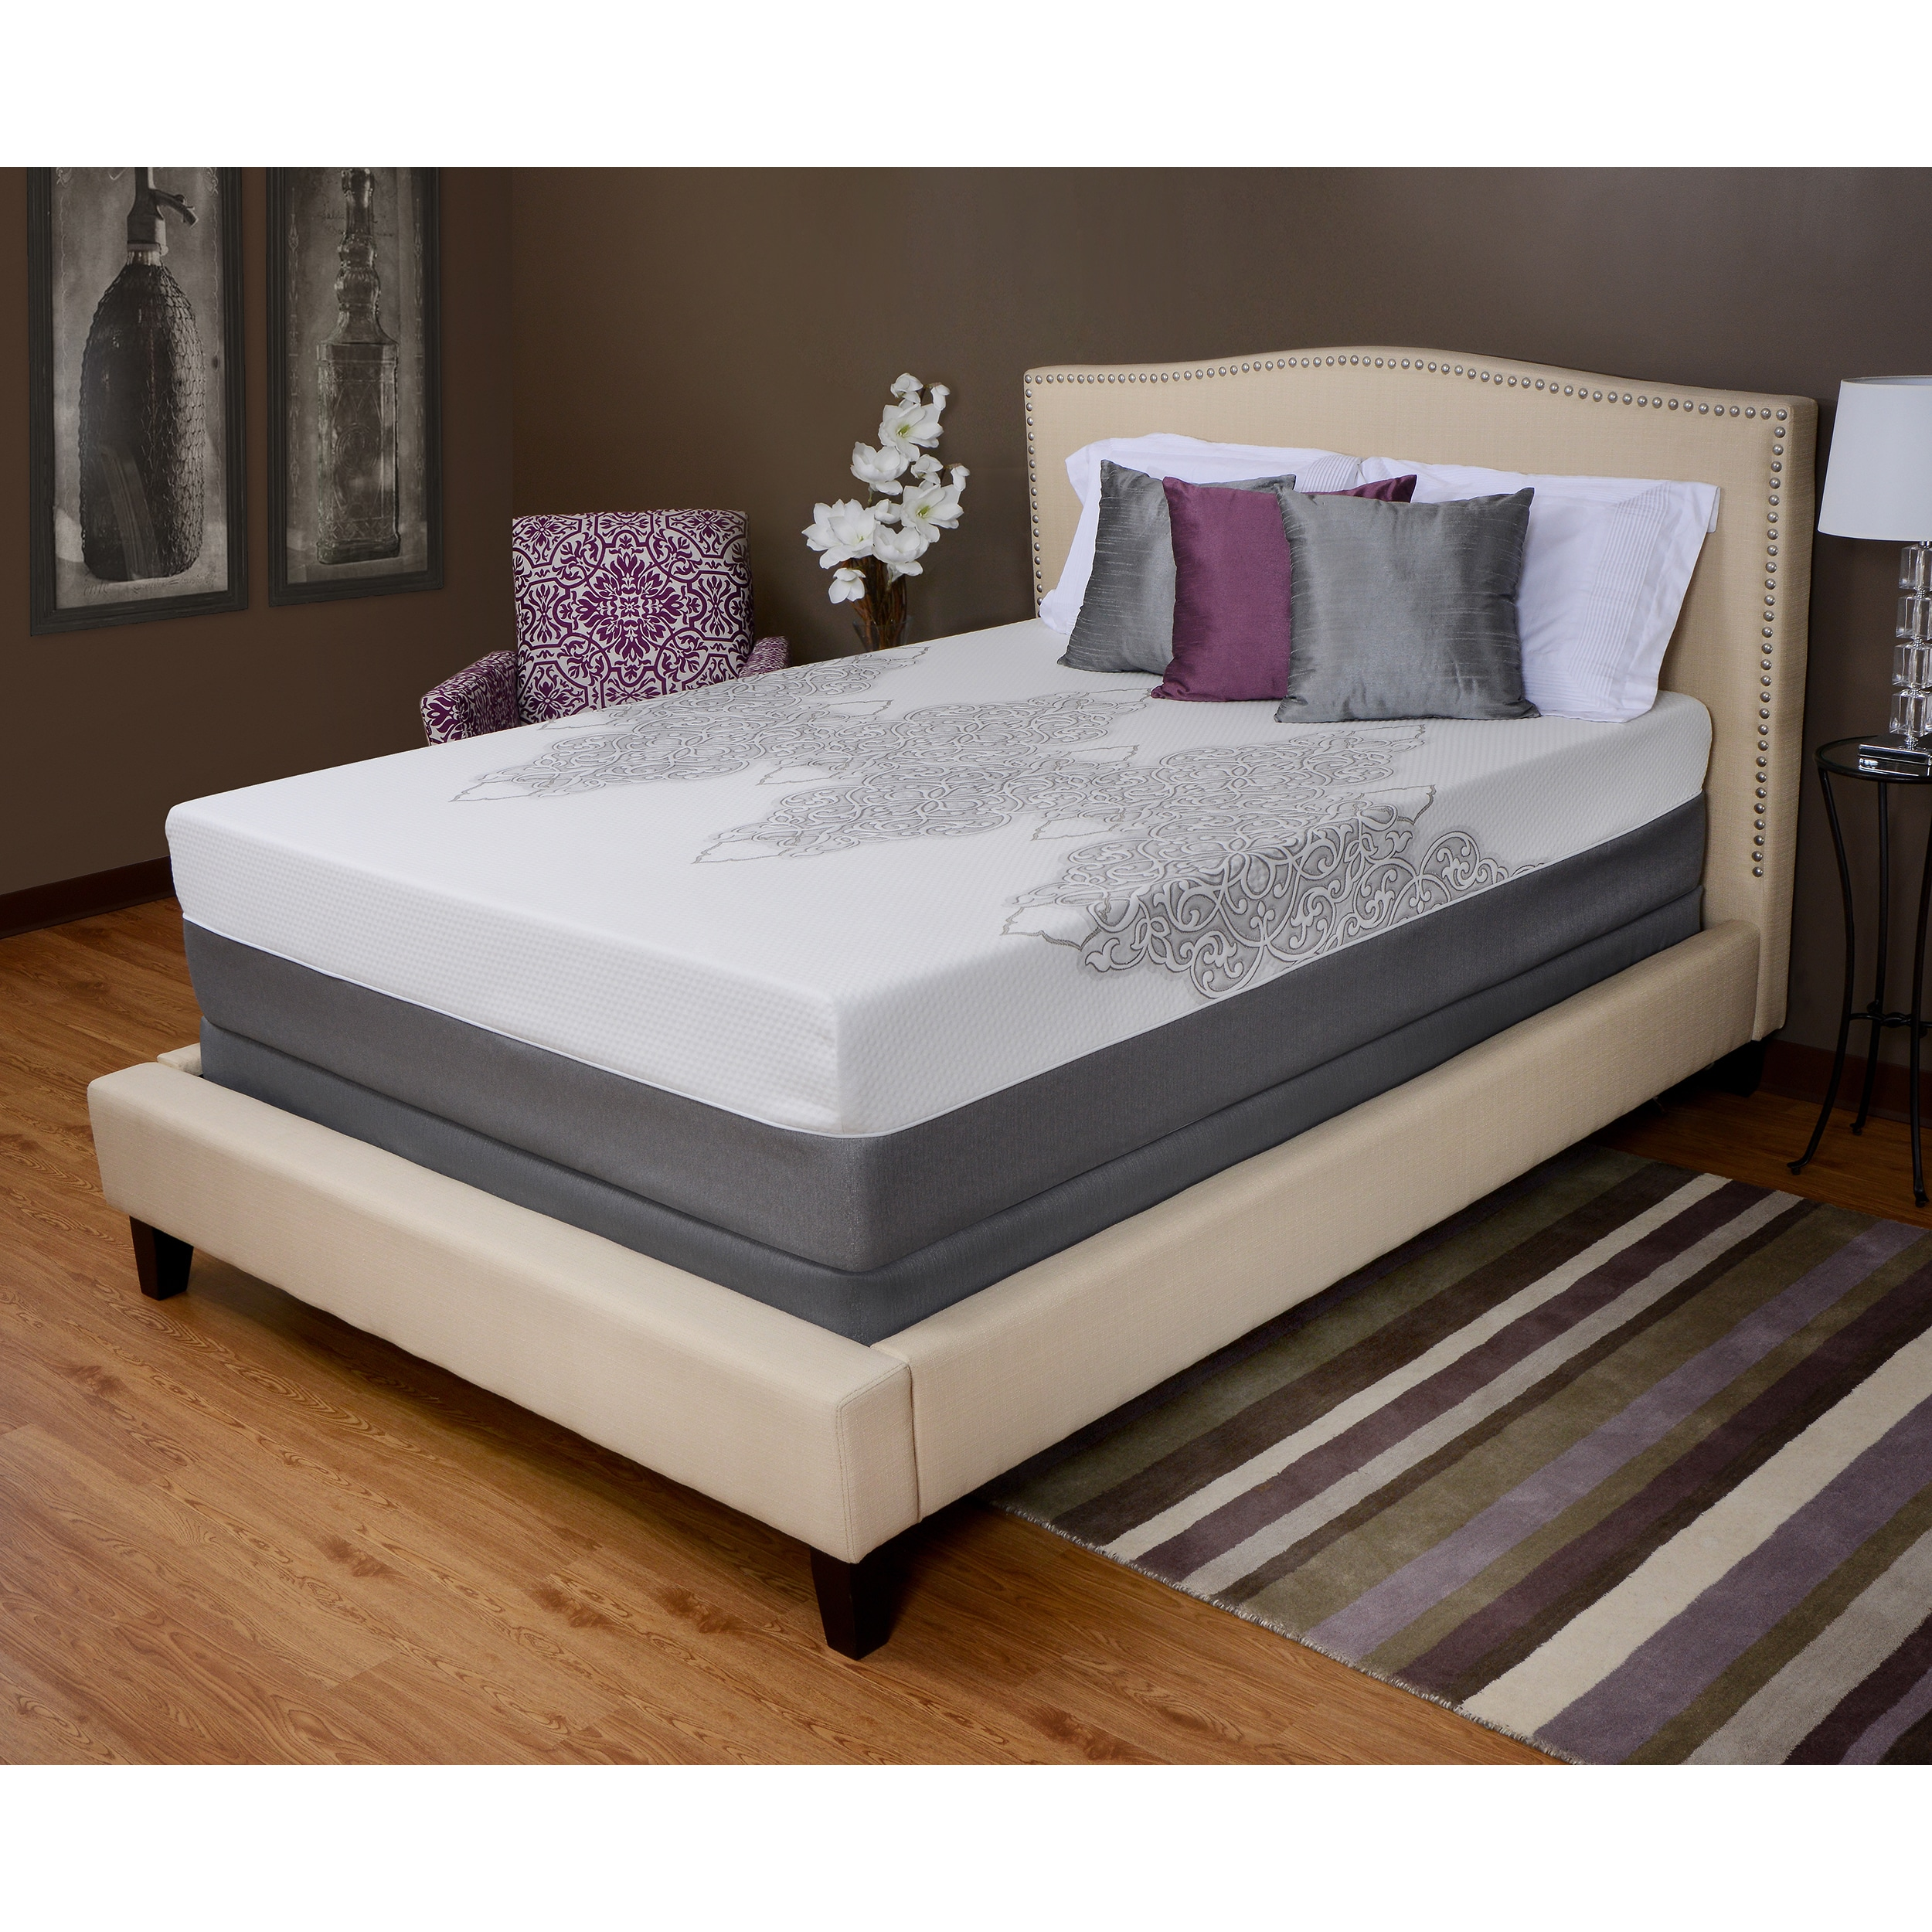 Angelohome Rossmore Deluxe 13-inch Twin-size Memory Foam Mattress by angelo:HOME at Sears.com